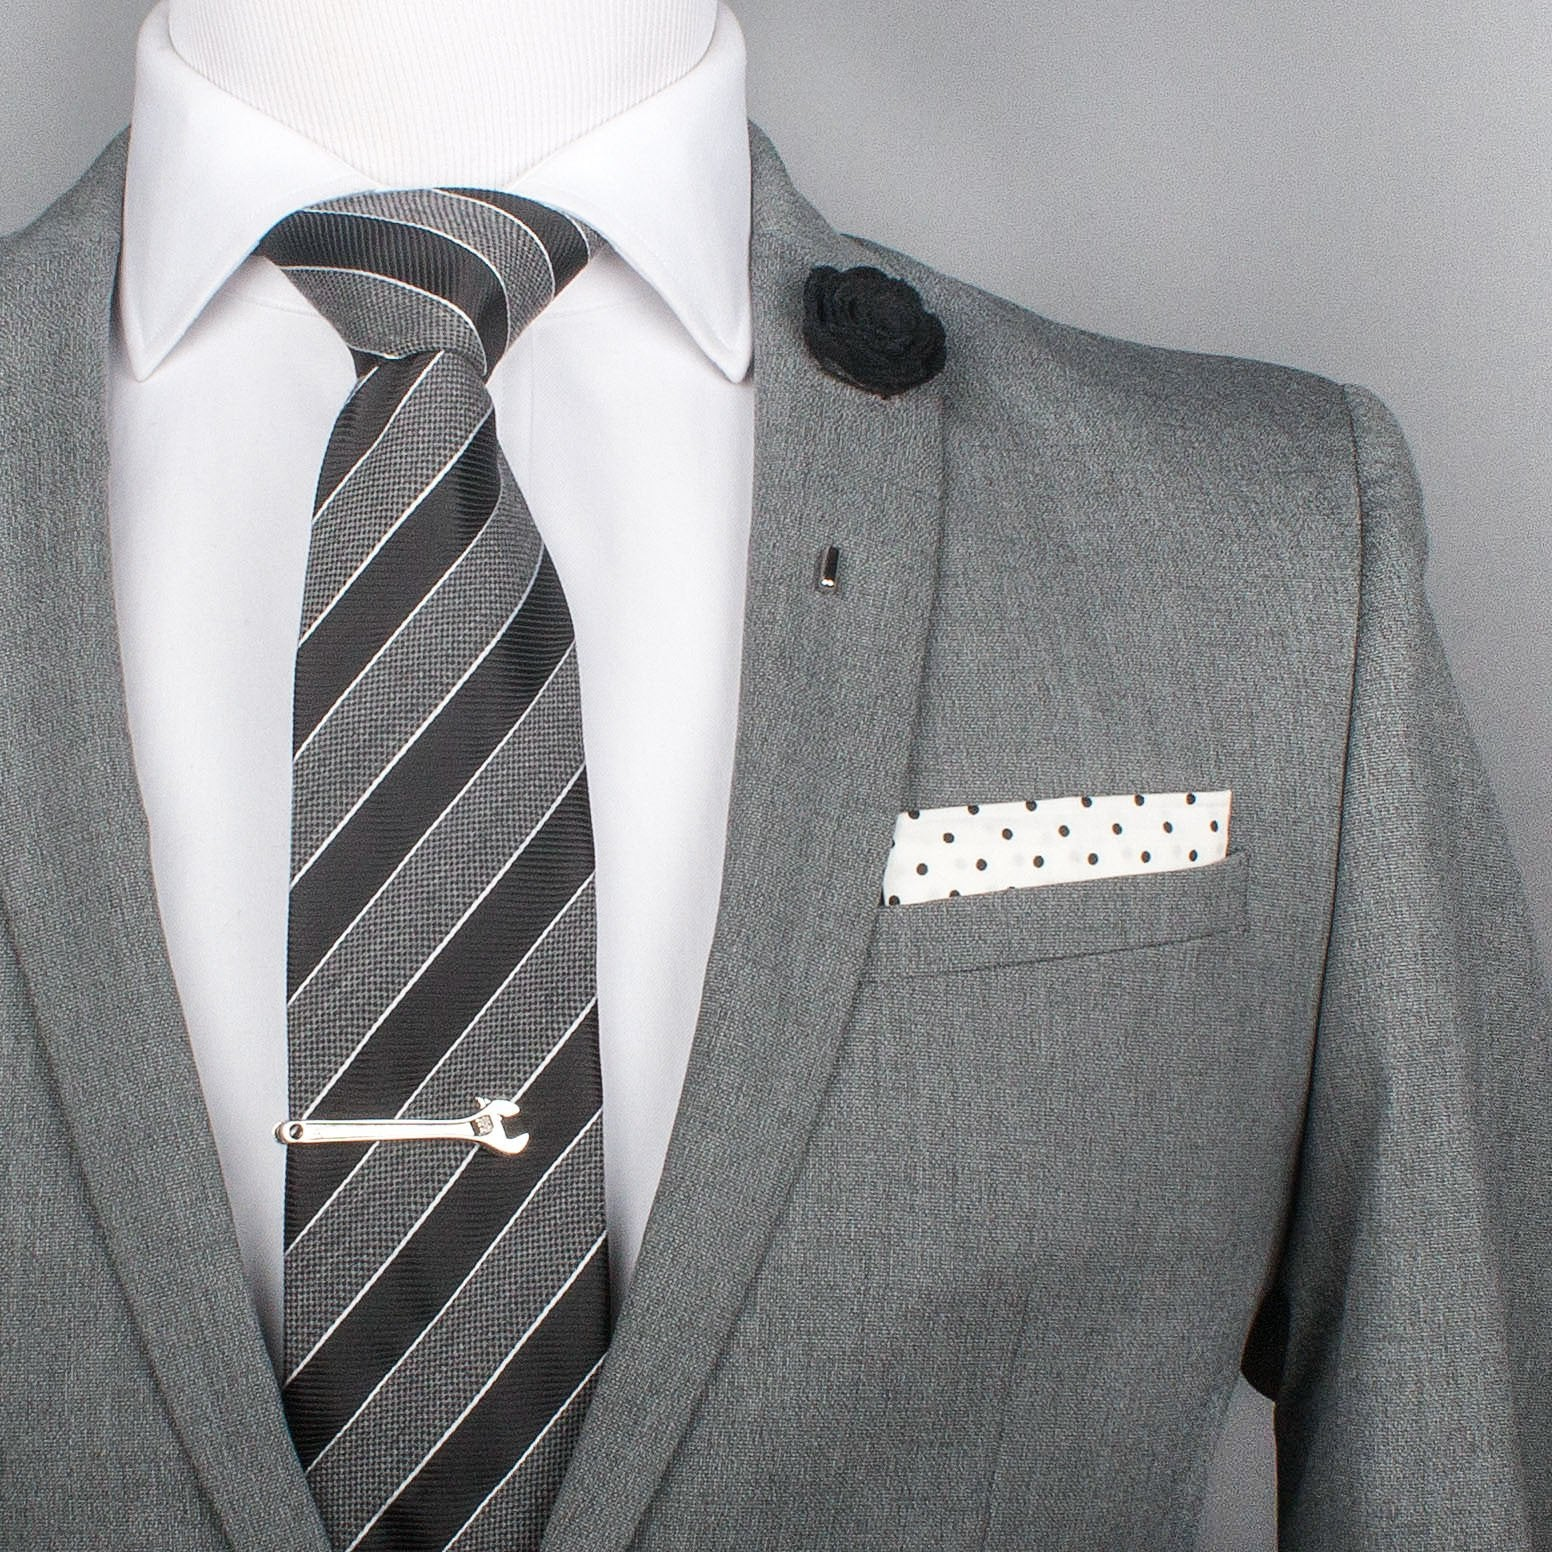 TEXTURED STRIPE TIE CLIPS